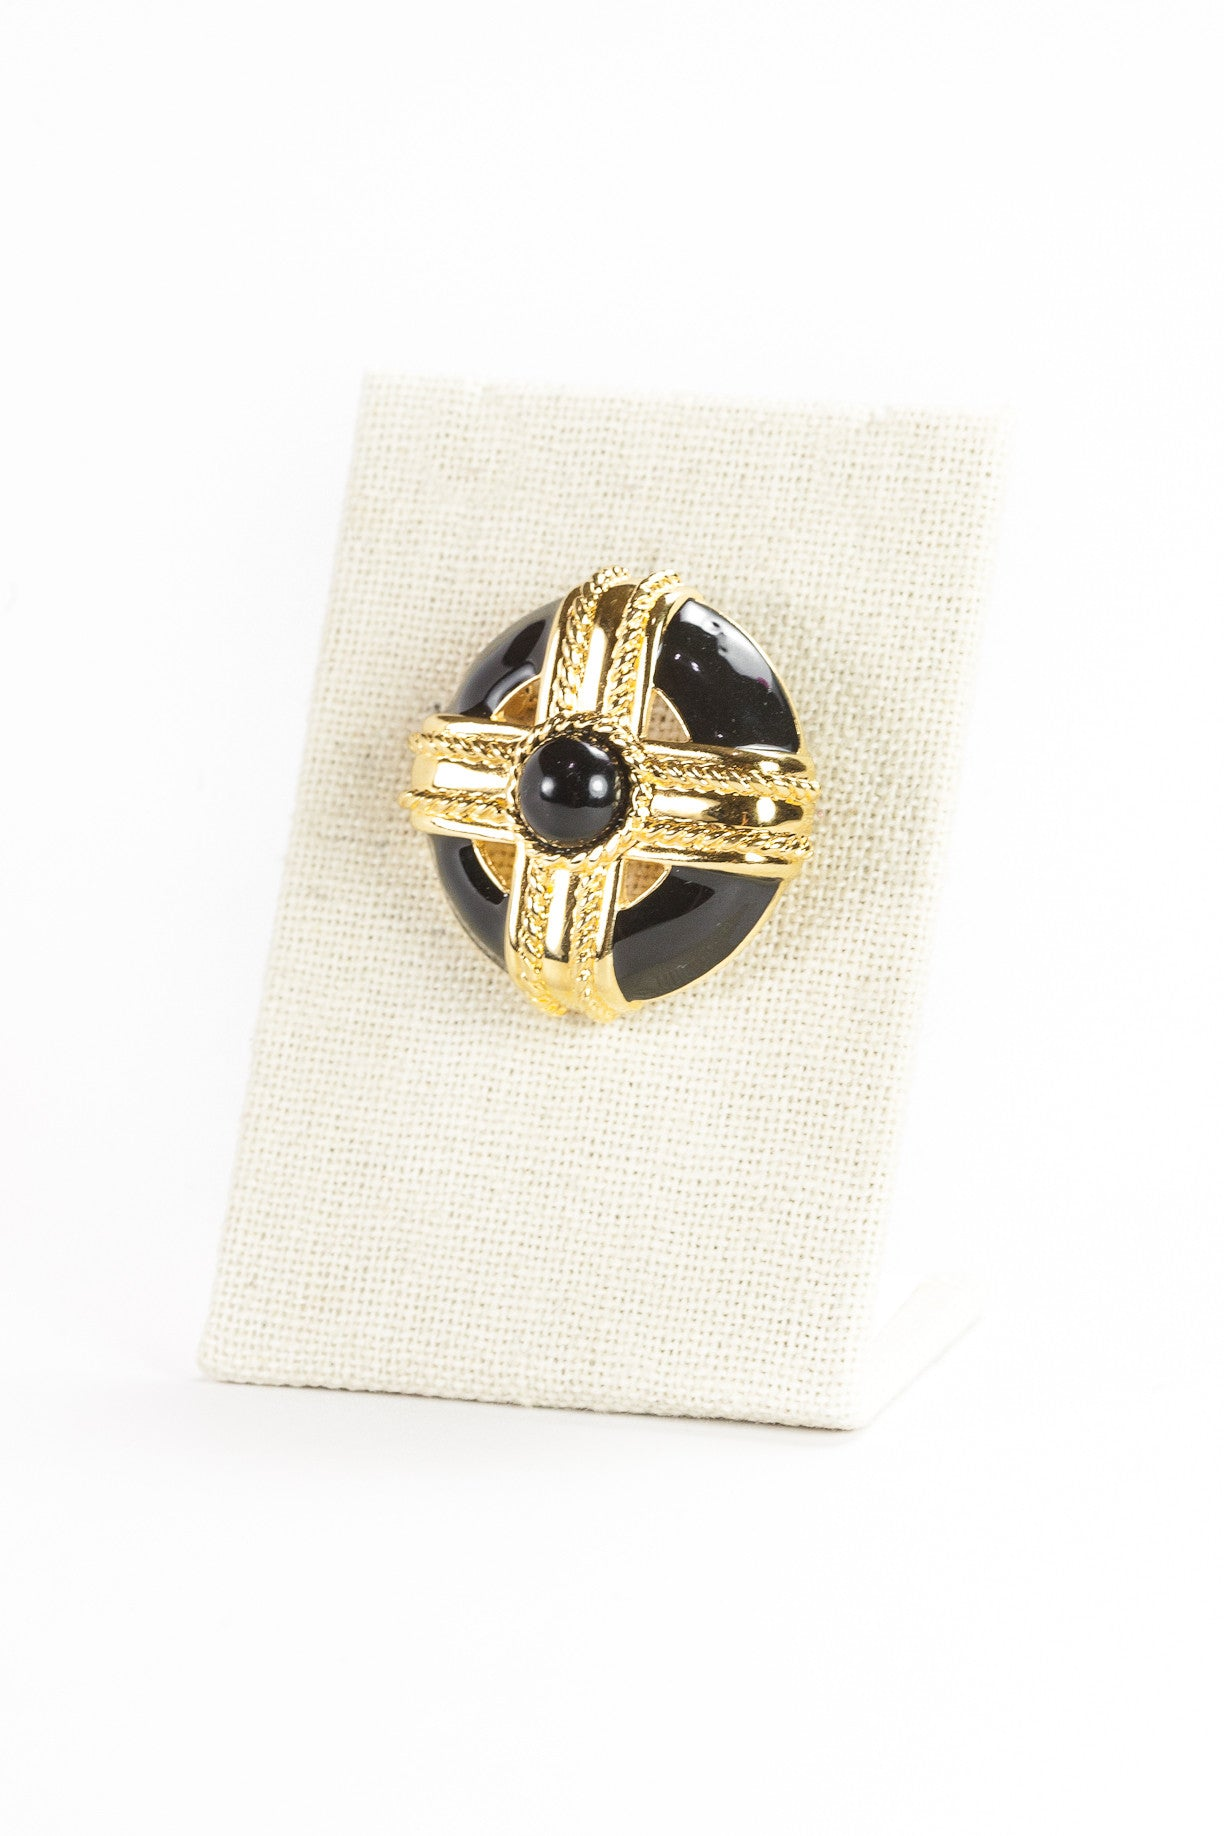 80's__Monet__Black Enamel Shield Brooch